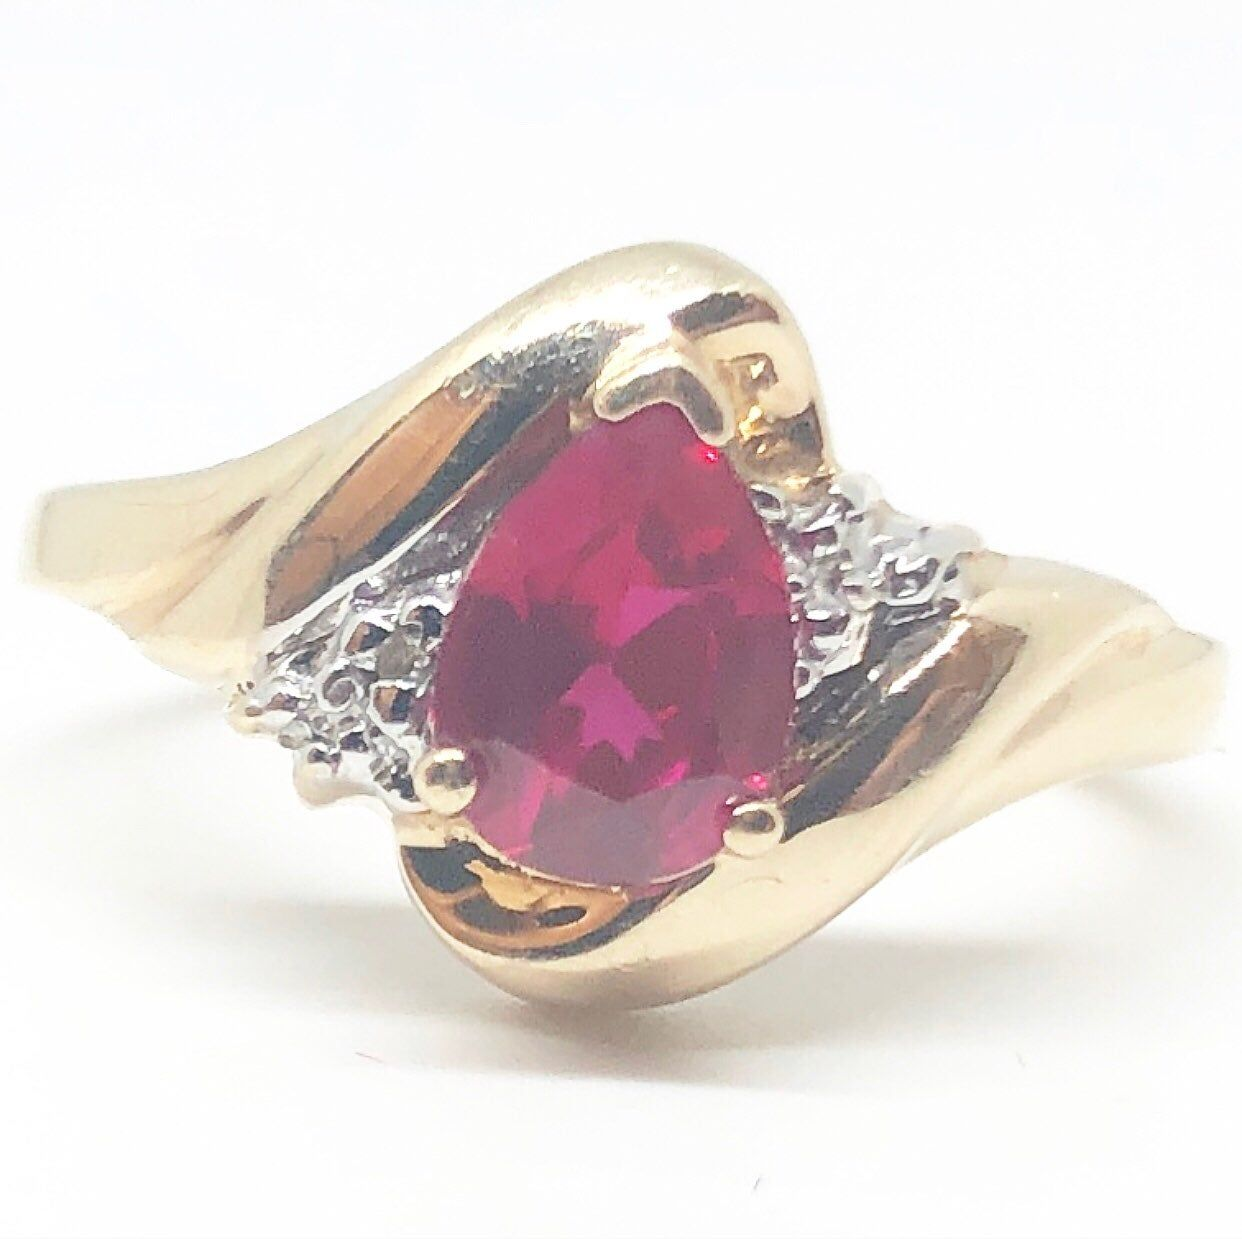 This Is An Absolutely Beautiful Genuine Ruby And Diamond Ring In Solid 10k Yellow Gold Size 6 5 The Ring Showcase Kay Jewelers Rings Ruby Diamond Rings Rings